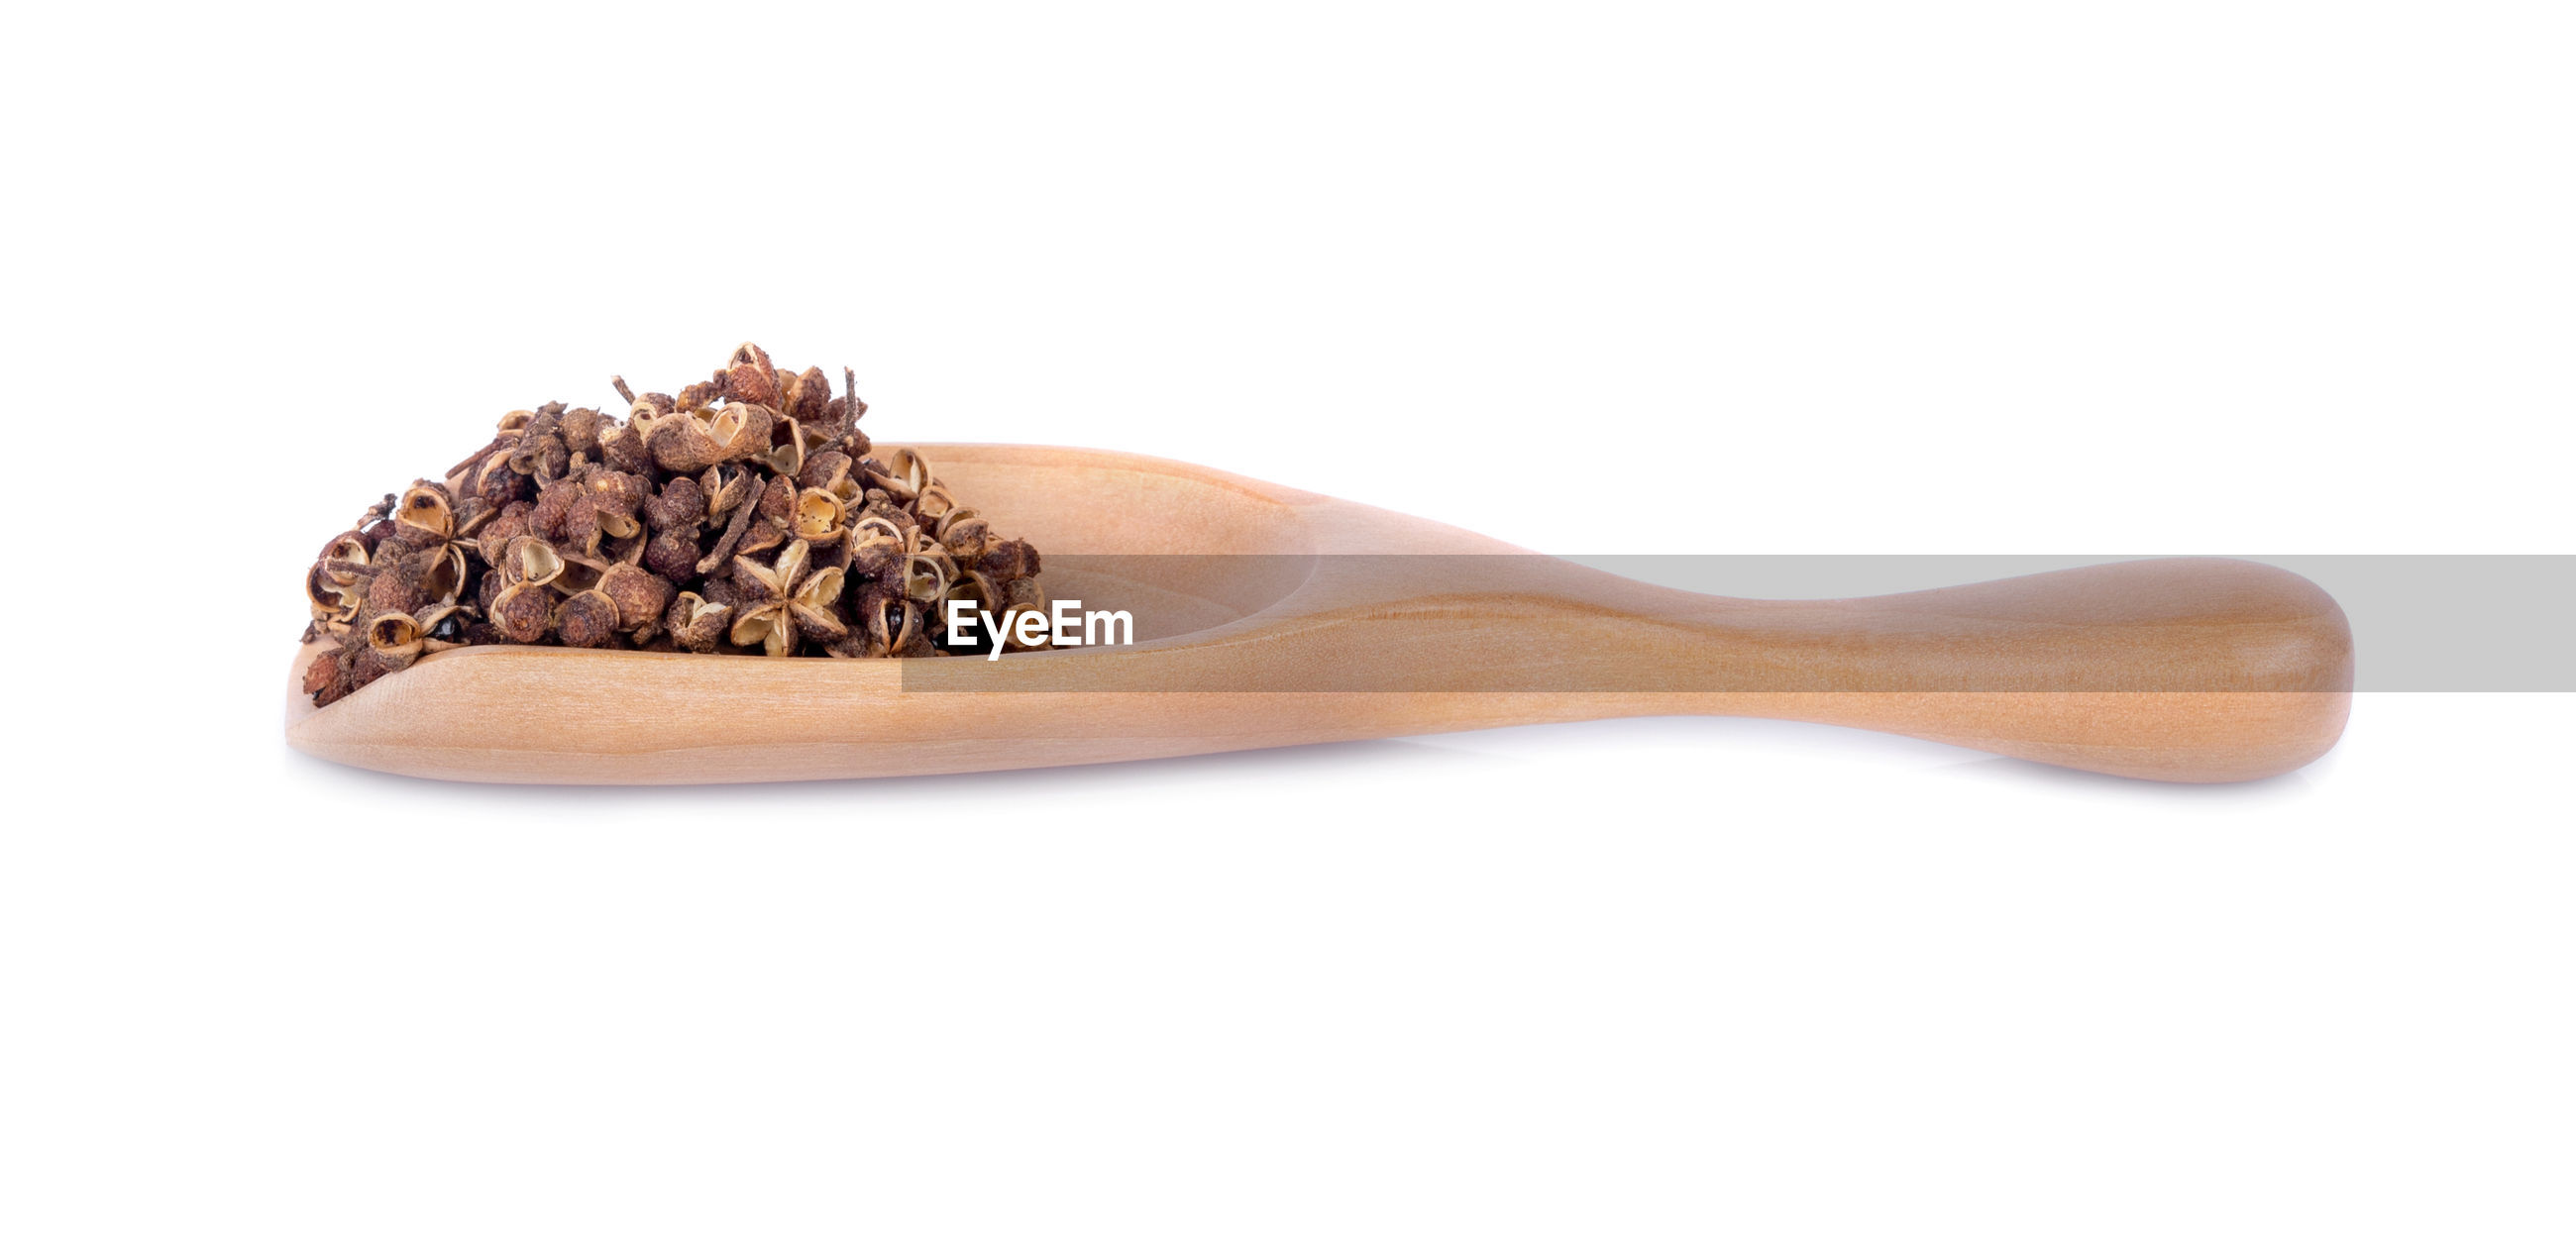 Close-up of spice in wooden spoon against white background